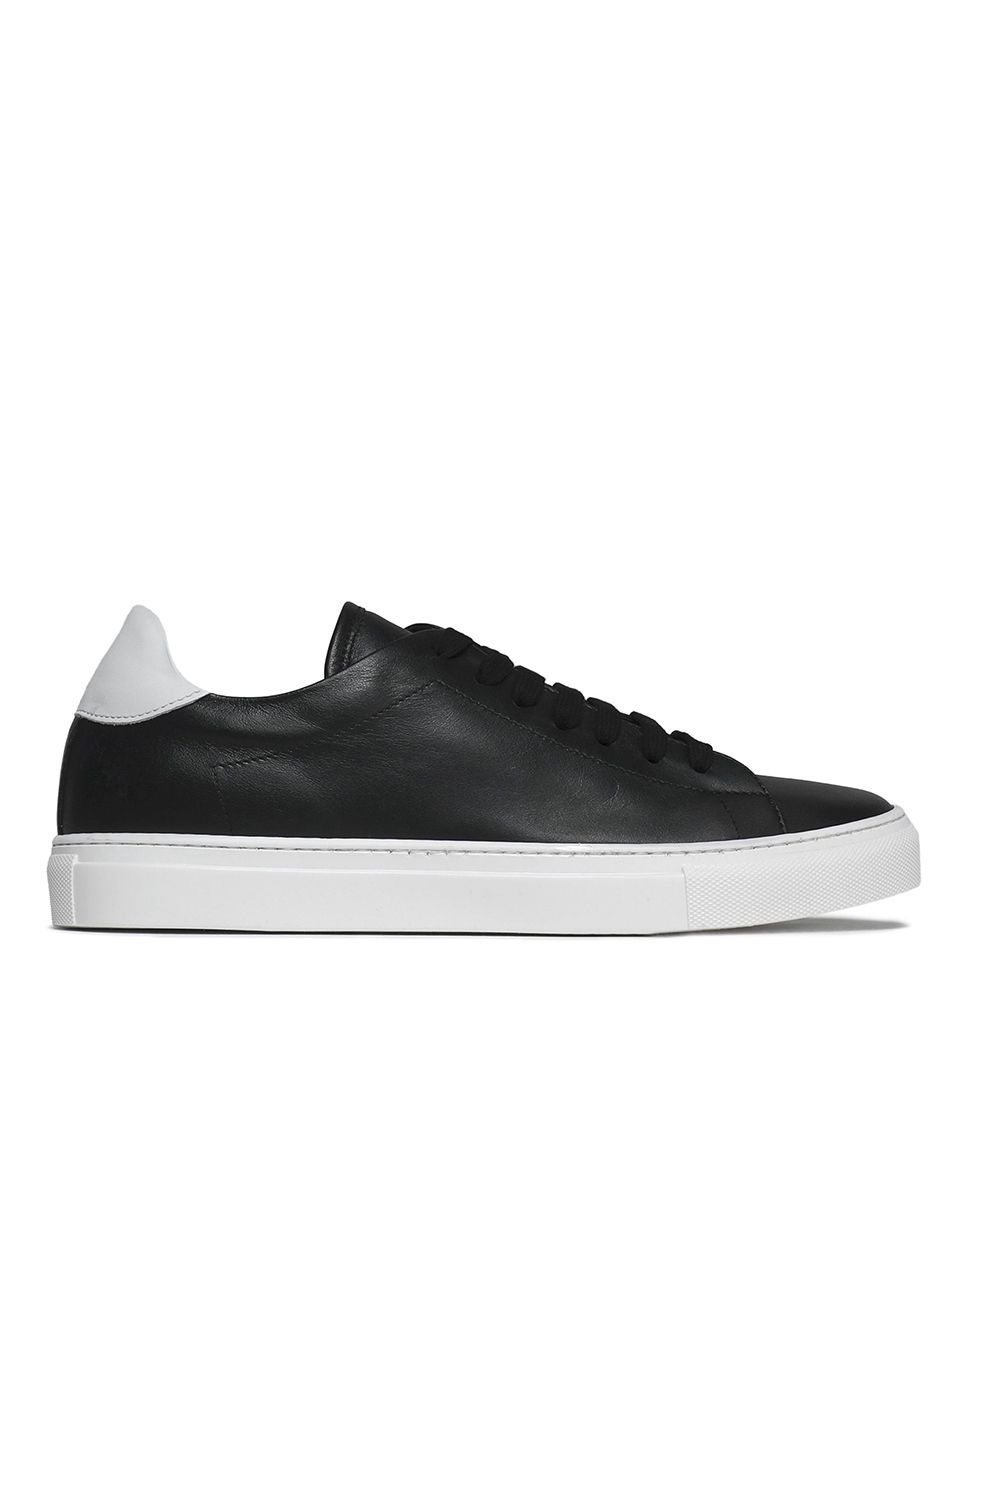 Tanya Two-Tone Leather Sneakers Iris & Ink theoutnet.com $44.00 SHOP IT